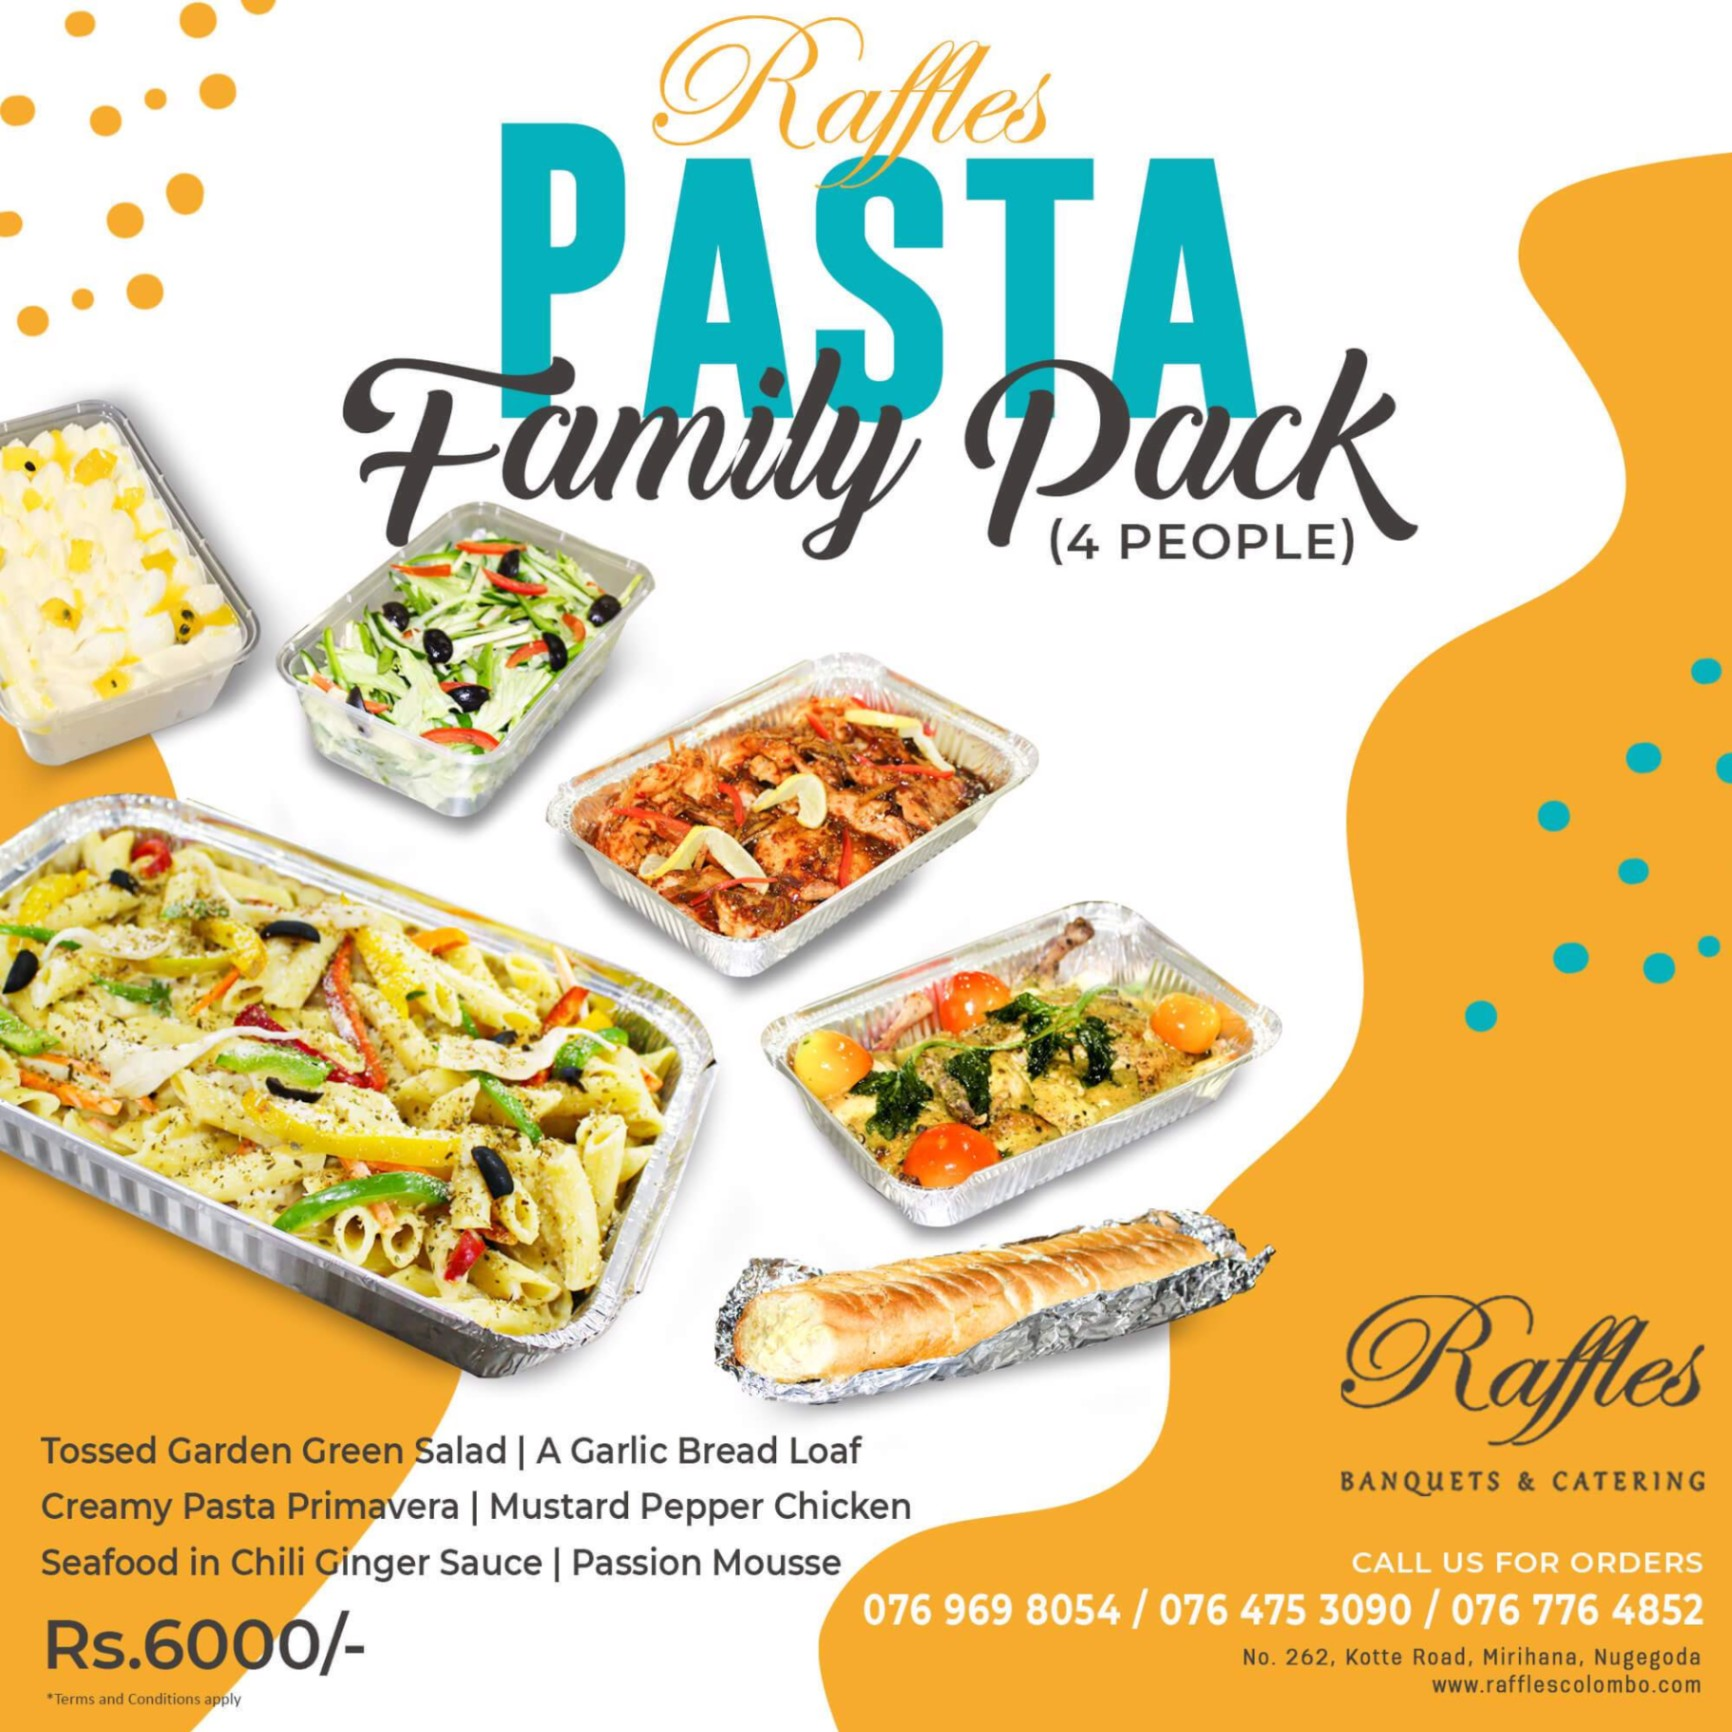 Have you tried our Pasta Family Pack?